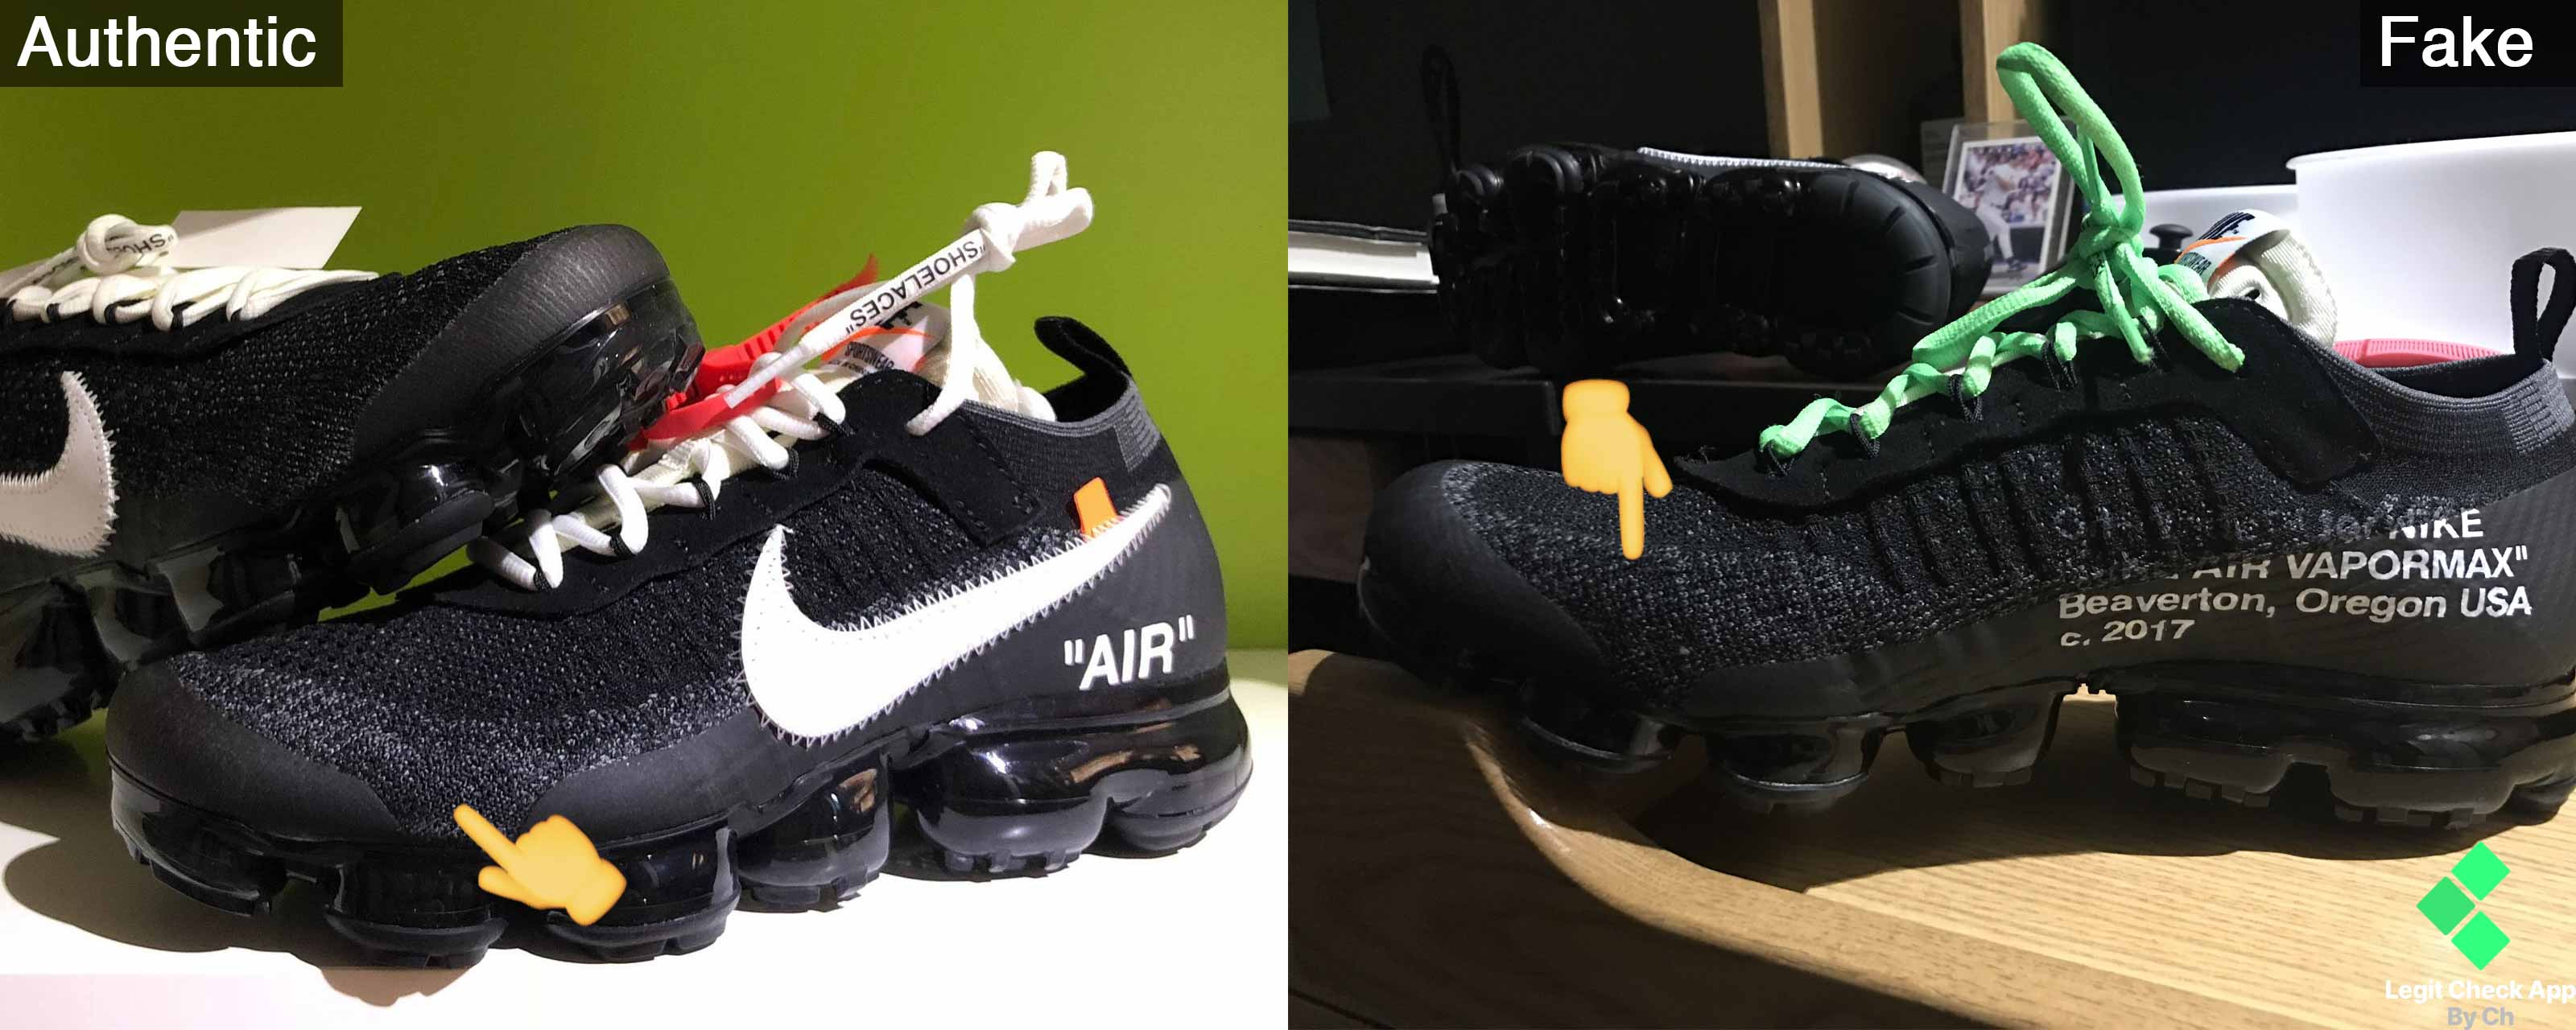 64ba3b1a51 Off-White Vapormax Fake Toebox vs Authentic Toebox. The flyknit on the fakes  has a different texture and is darker.